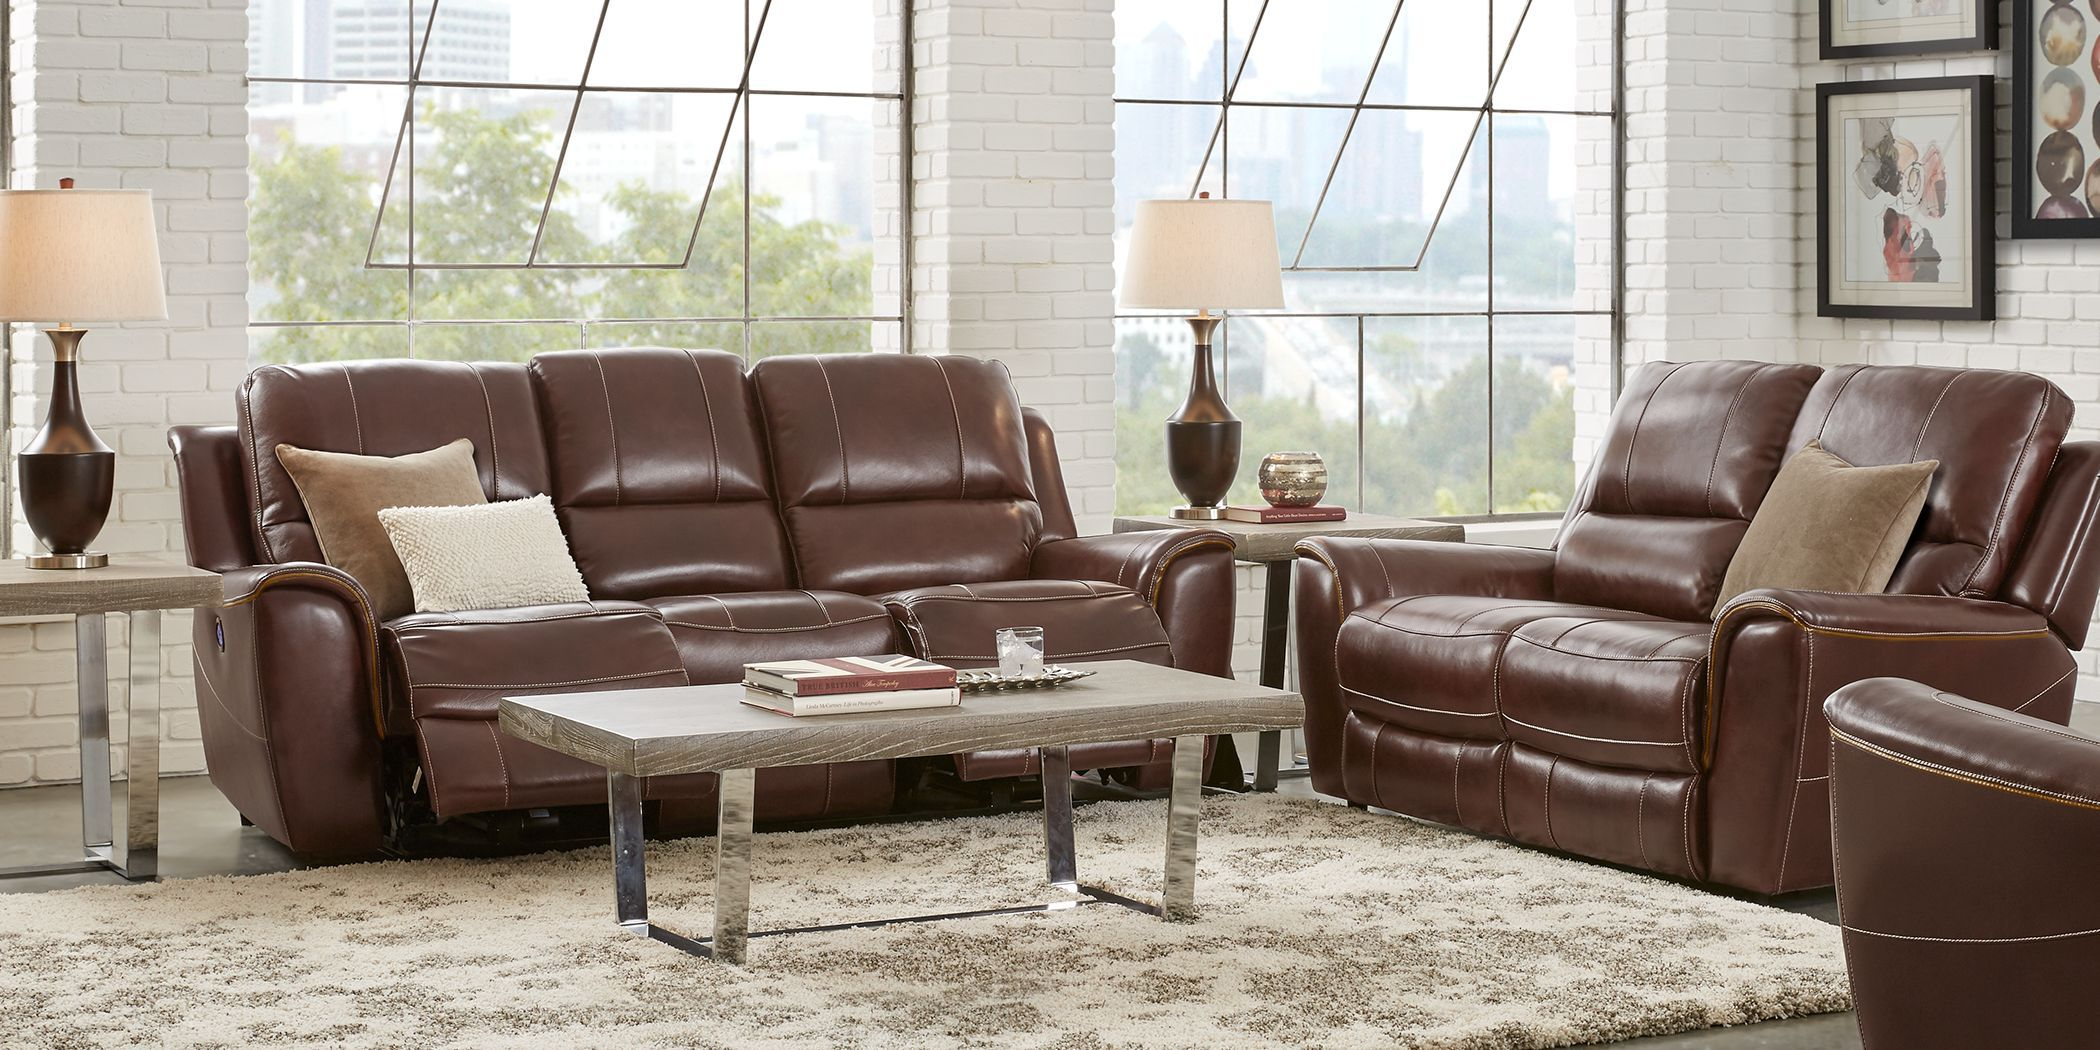 Lanzo Merlot Leather 5 Pc Living Room With Reclining Sofa Living Room Leather Living Room Sets Furniture Leather Living Room Set #rooms #to #go #living #room #sofas